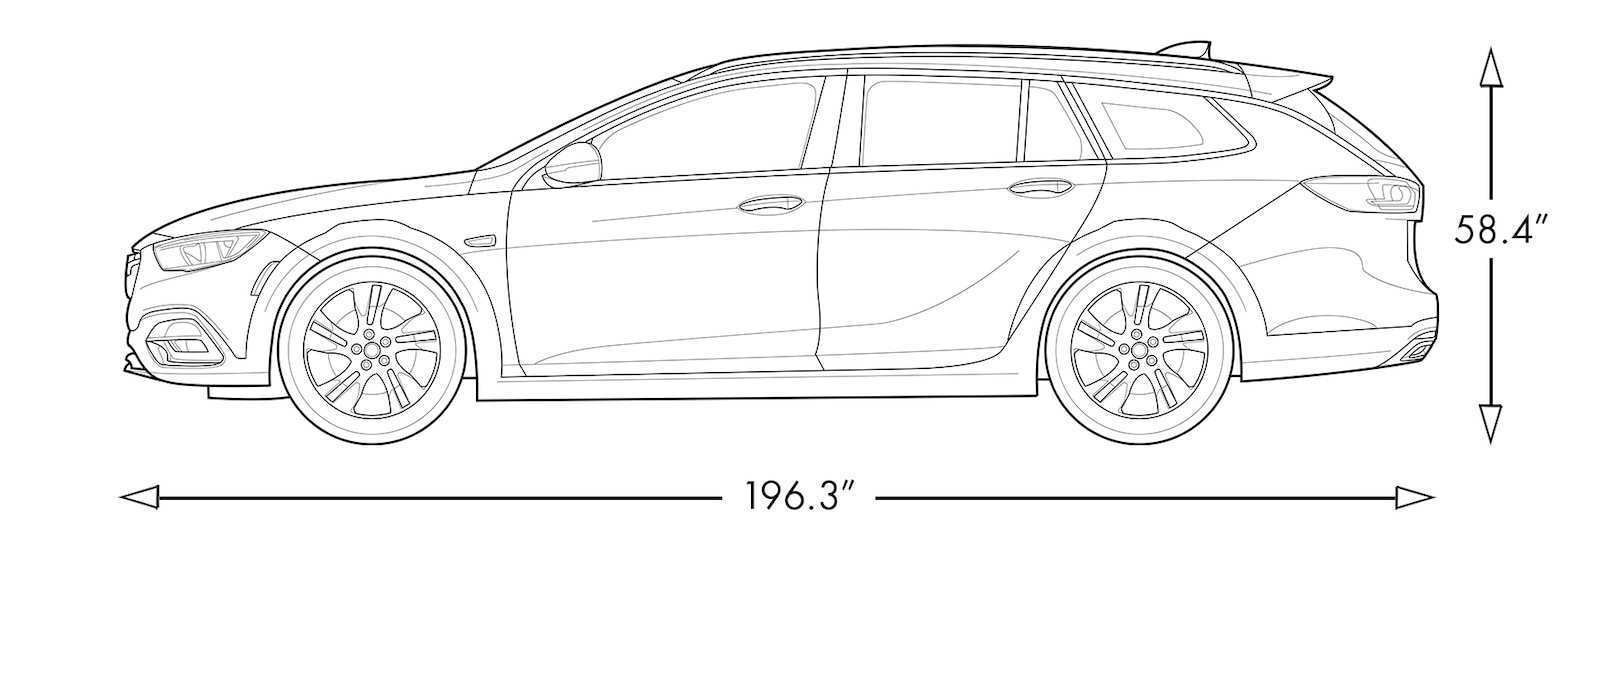 30 Gallery of The Buick Station Wagon 2019 Performance New Review for The Buick Station Wagon 2019 Performance